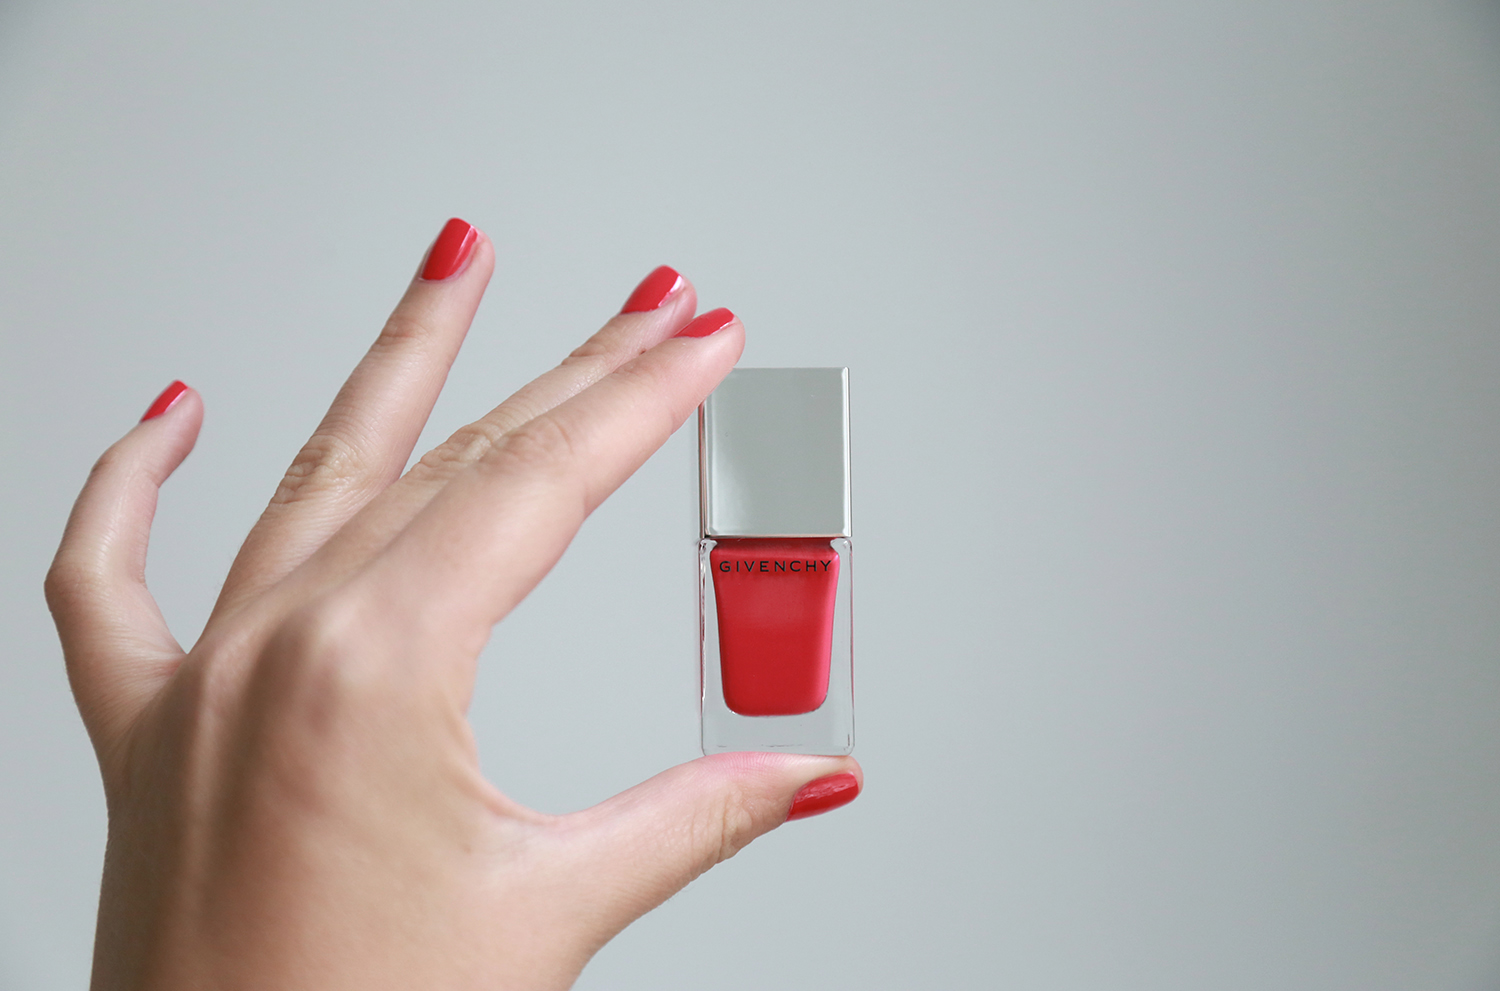 vernis givenchy